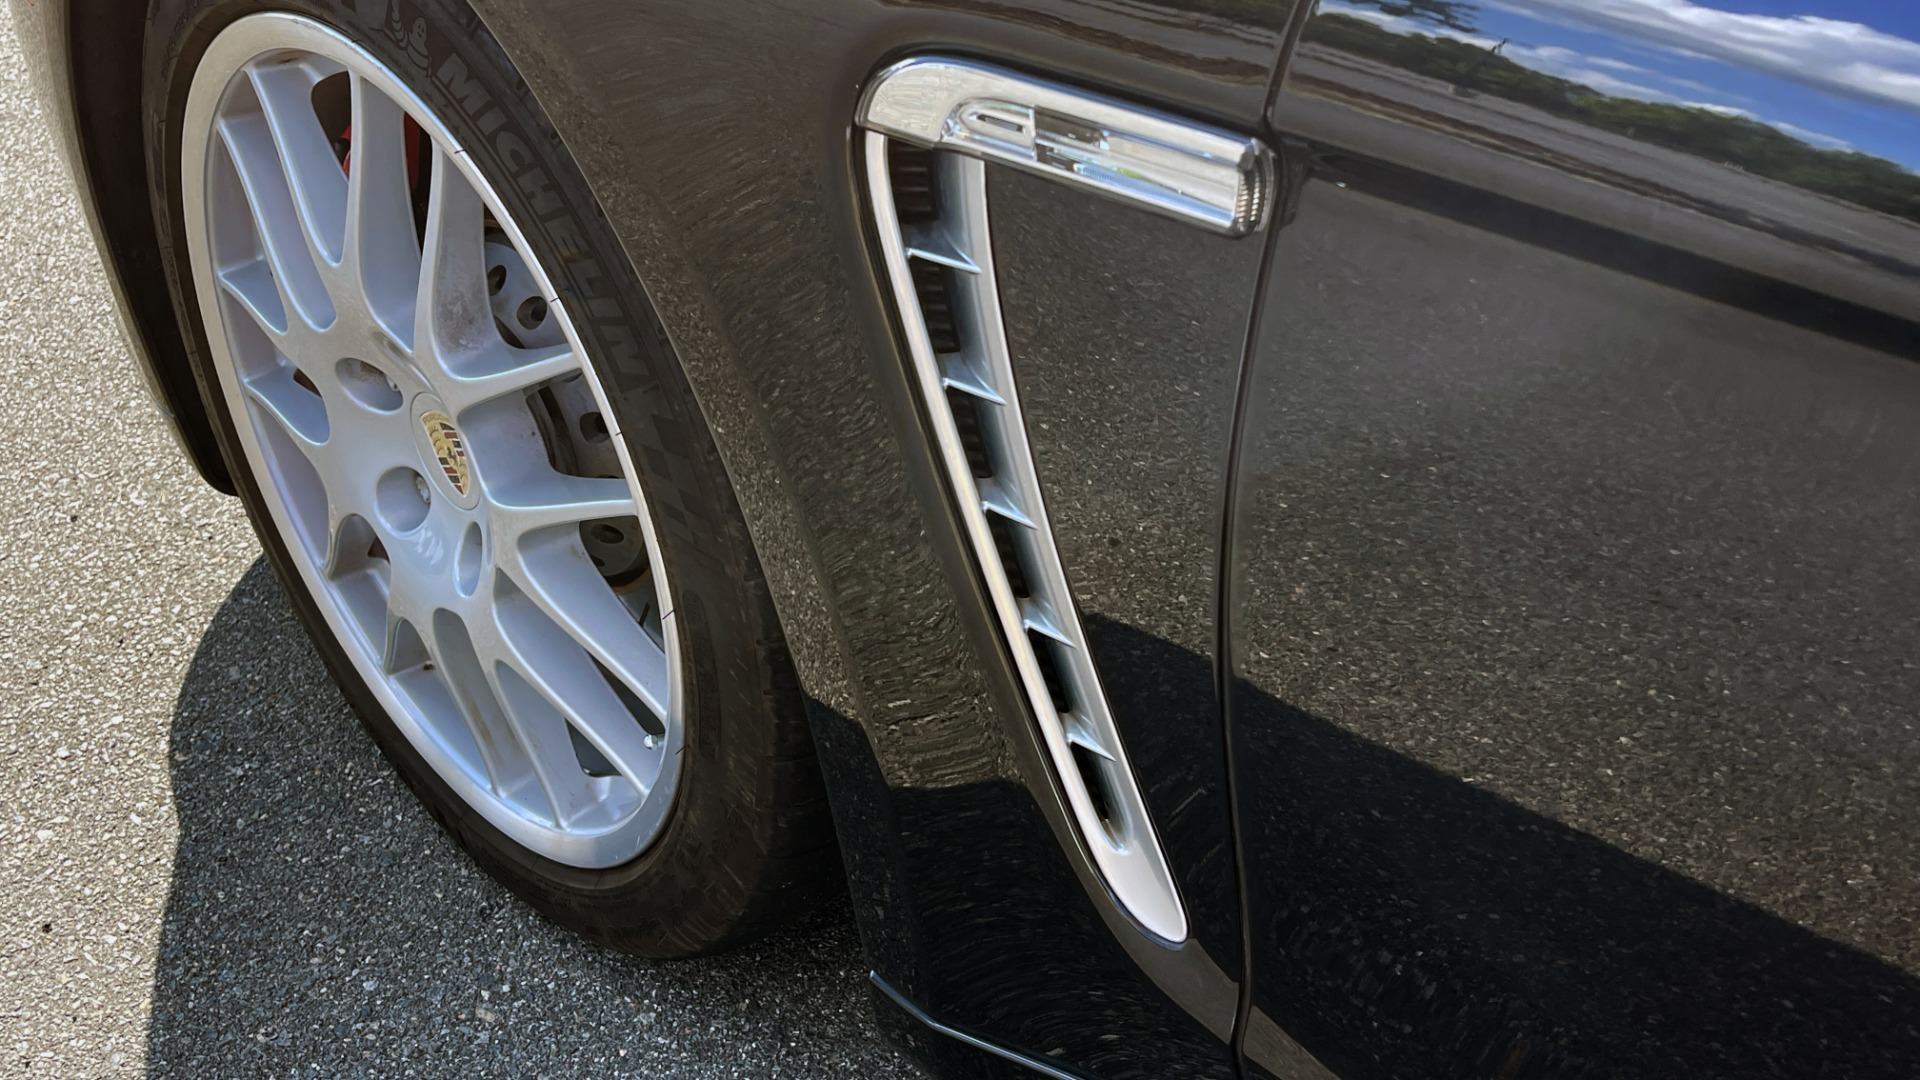 Used 2010 Porsche PANAMERA 4DR HB TURBO / SPORT CHRONO / BURMESTER / AUTO CLIMATE CONTROL for sale $40,995 at Formula Imports in Charlotte NC 28227 13